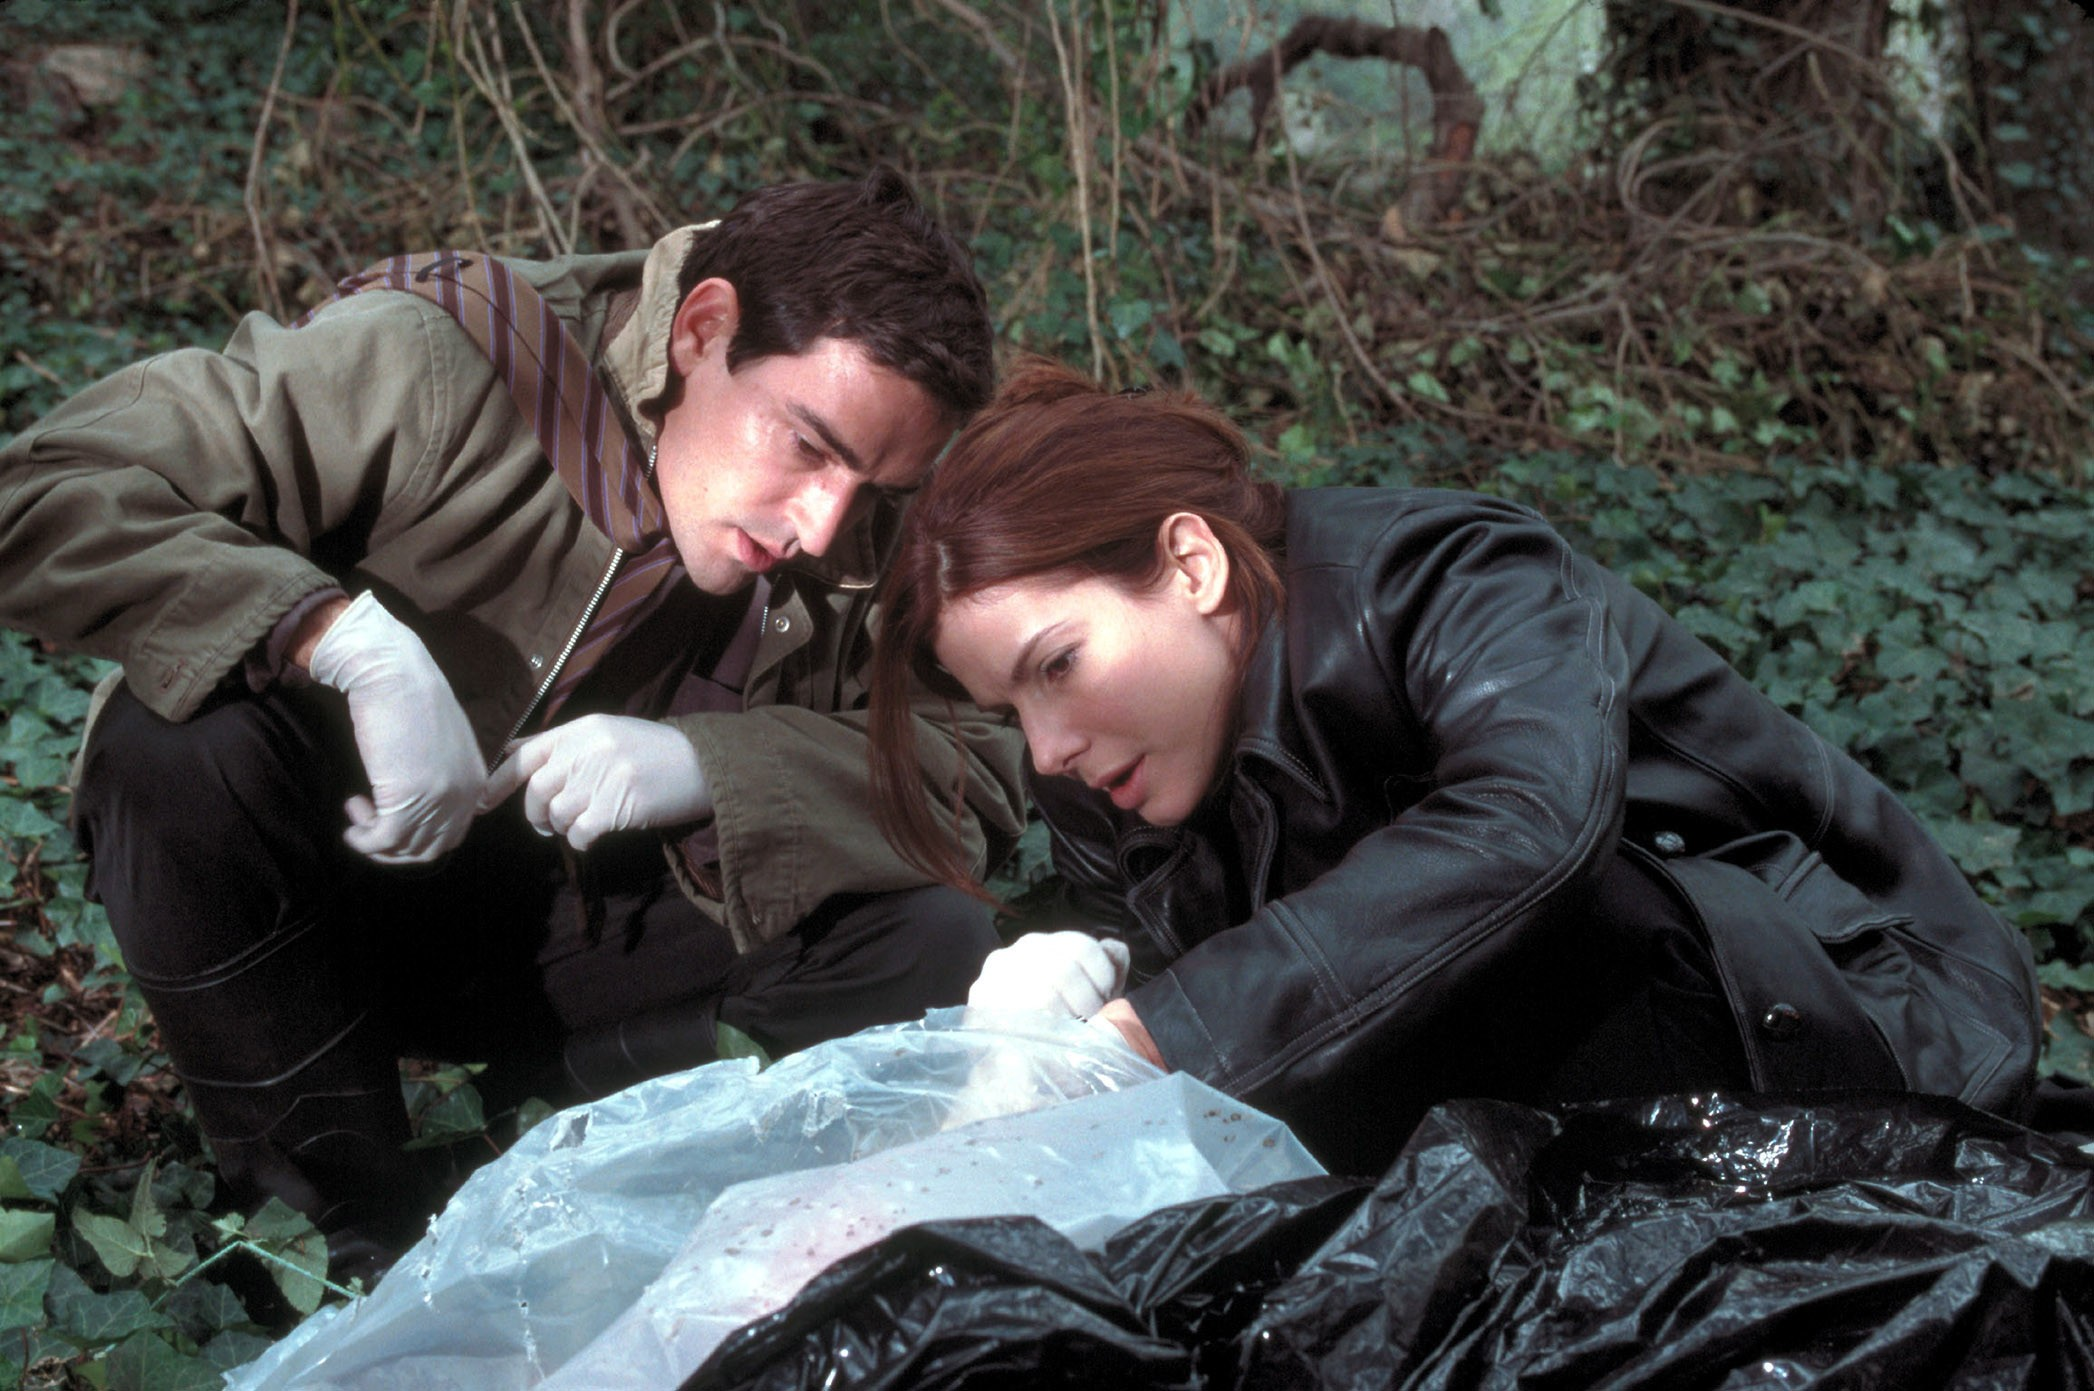 Detectives Ben Chaplin and Sandra Bullock investigate the dead body in Murder By Numbers (2002)